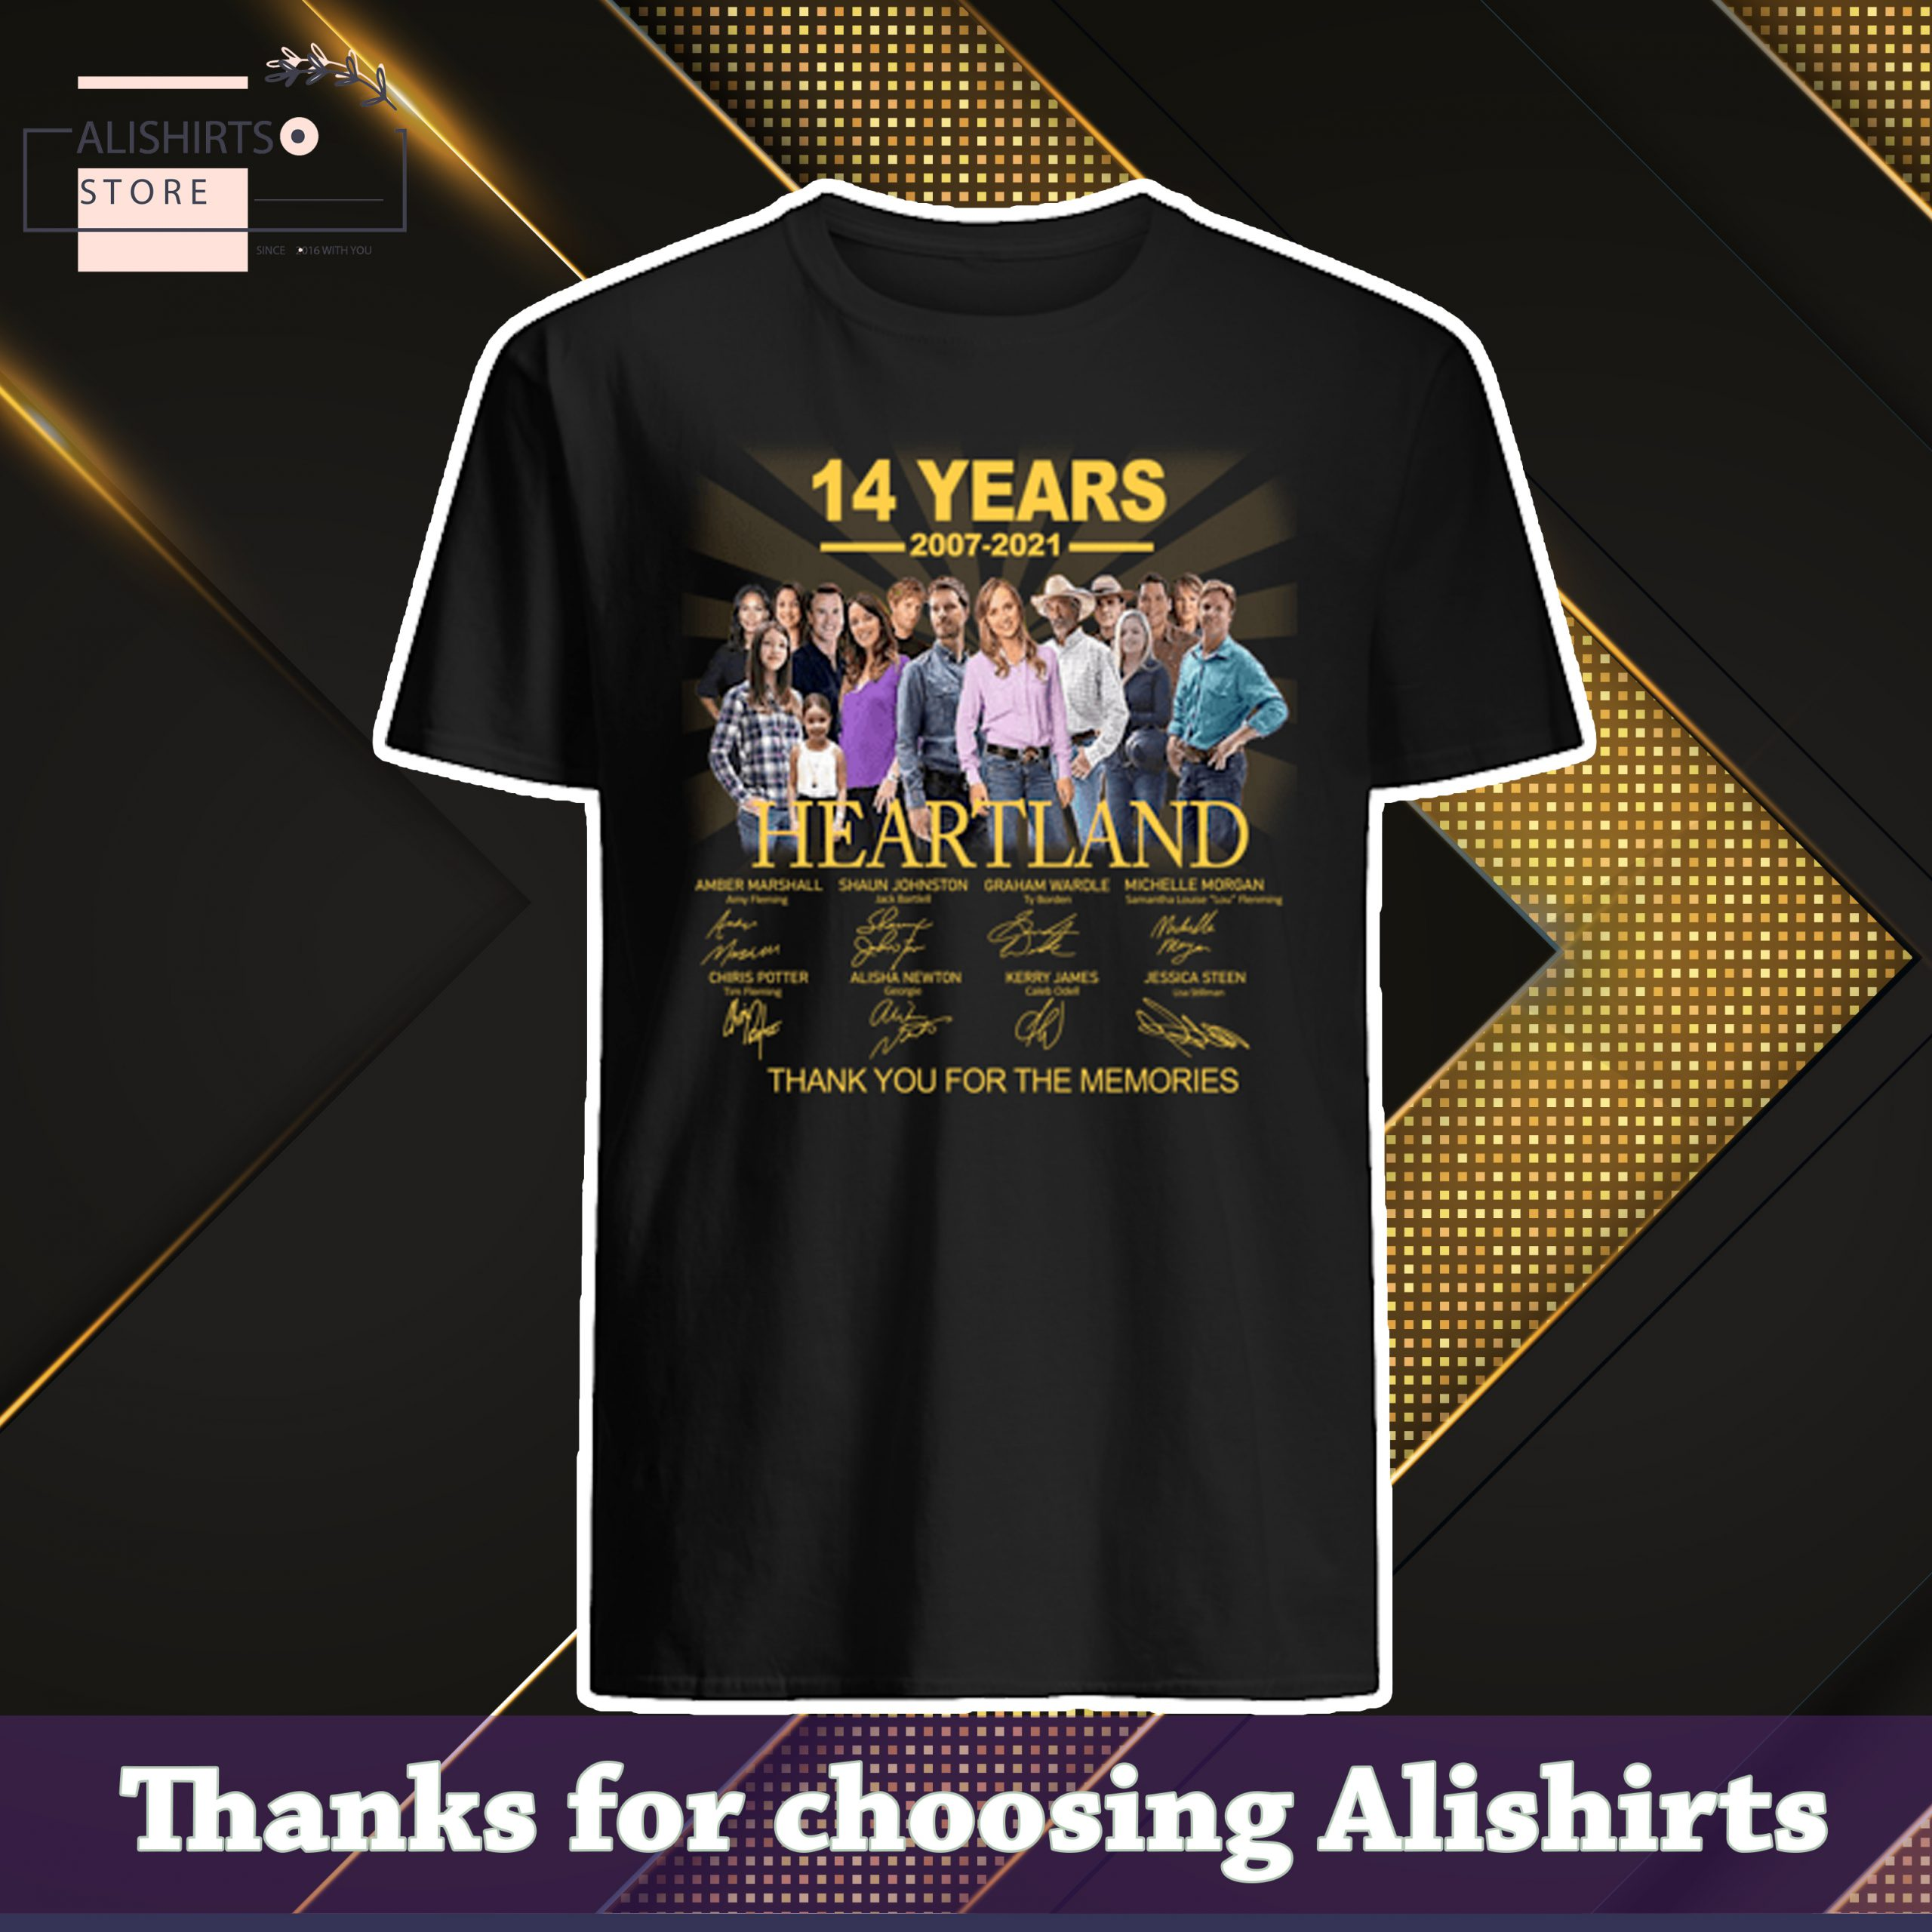 [AUTHENTIC] – 14 years 2007 2021 Heartland signatures thank you for the memories shirt